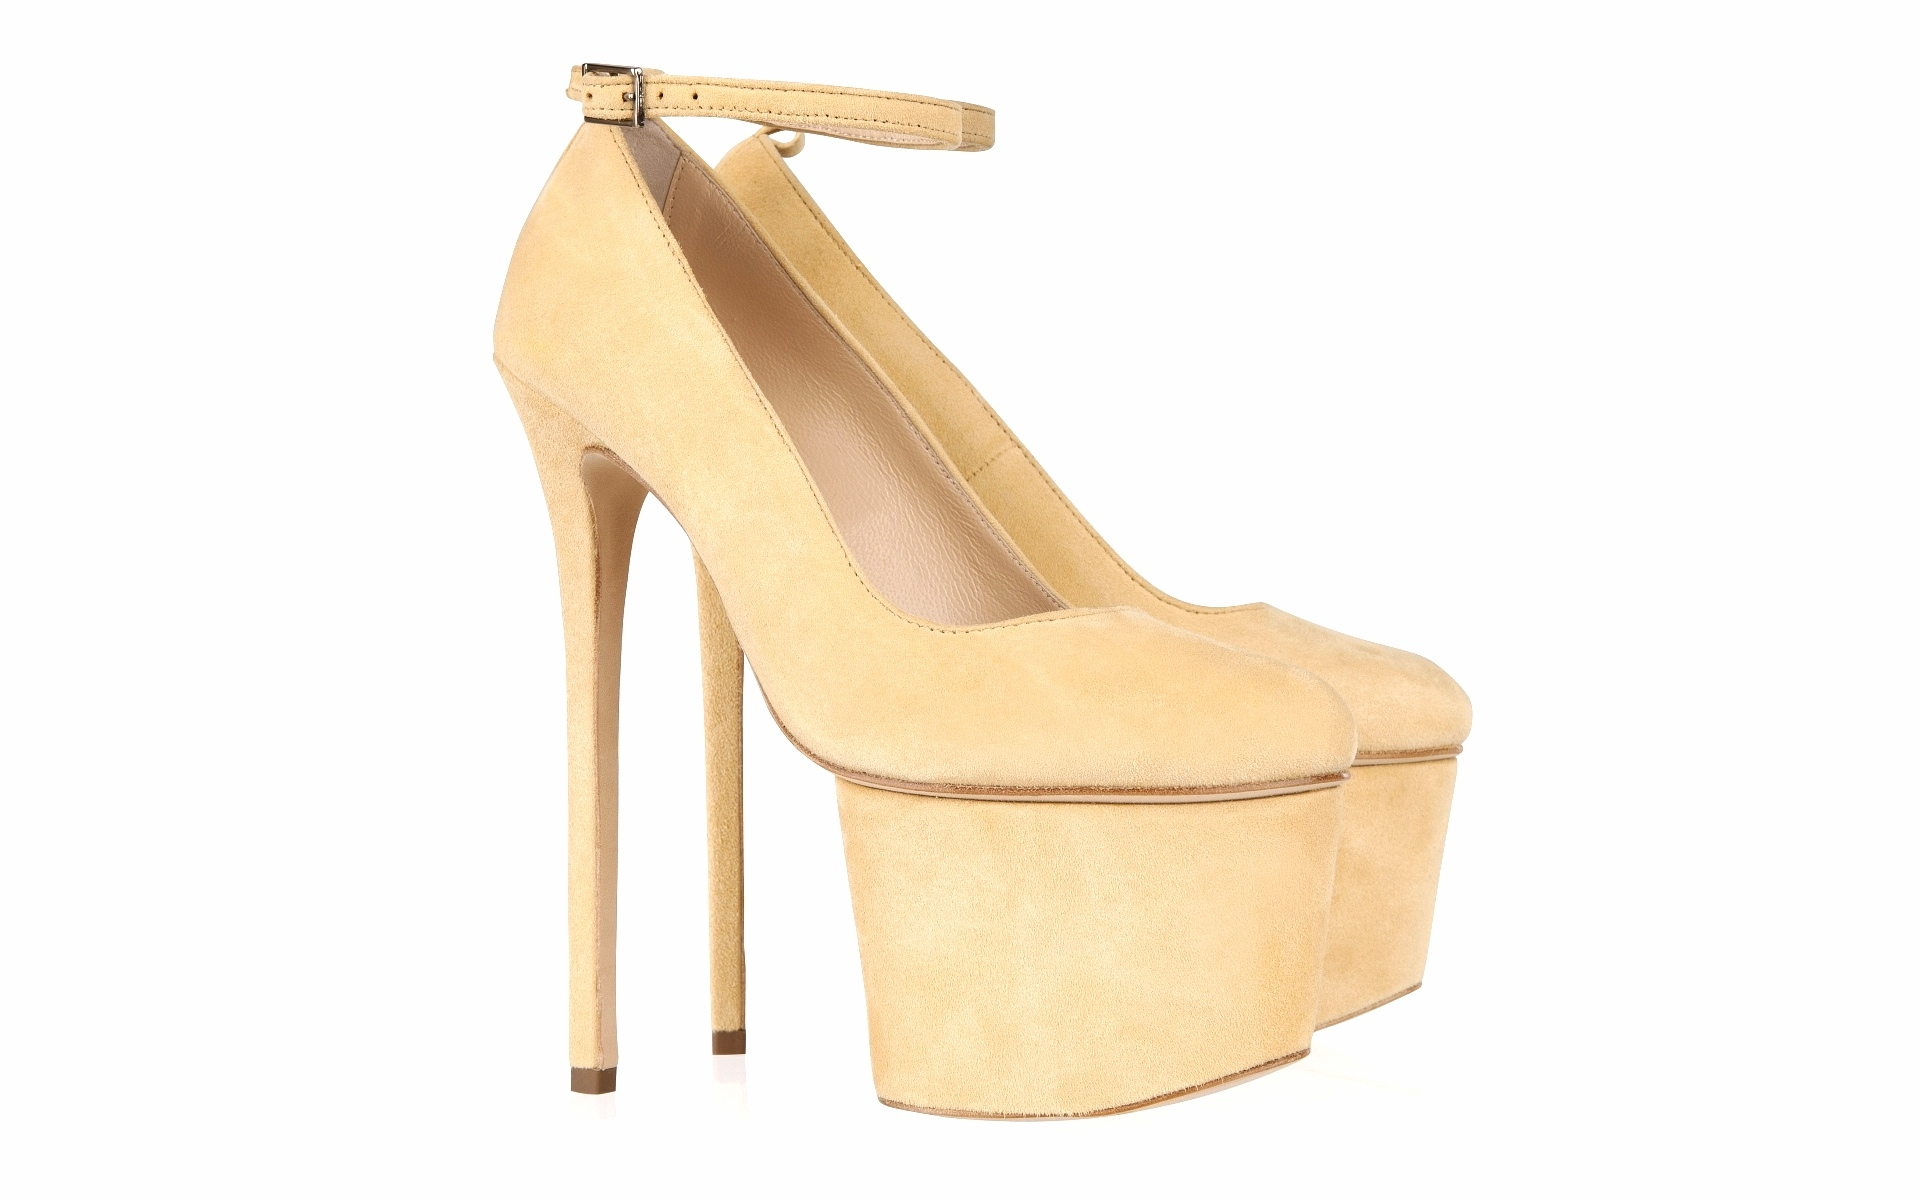 Ankle Strap Pump 7 Inch - Shop - Olcay Gulsen